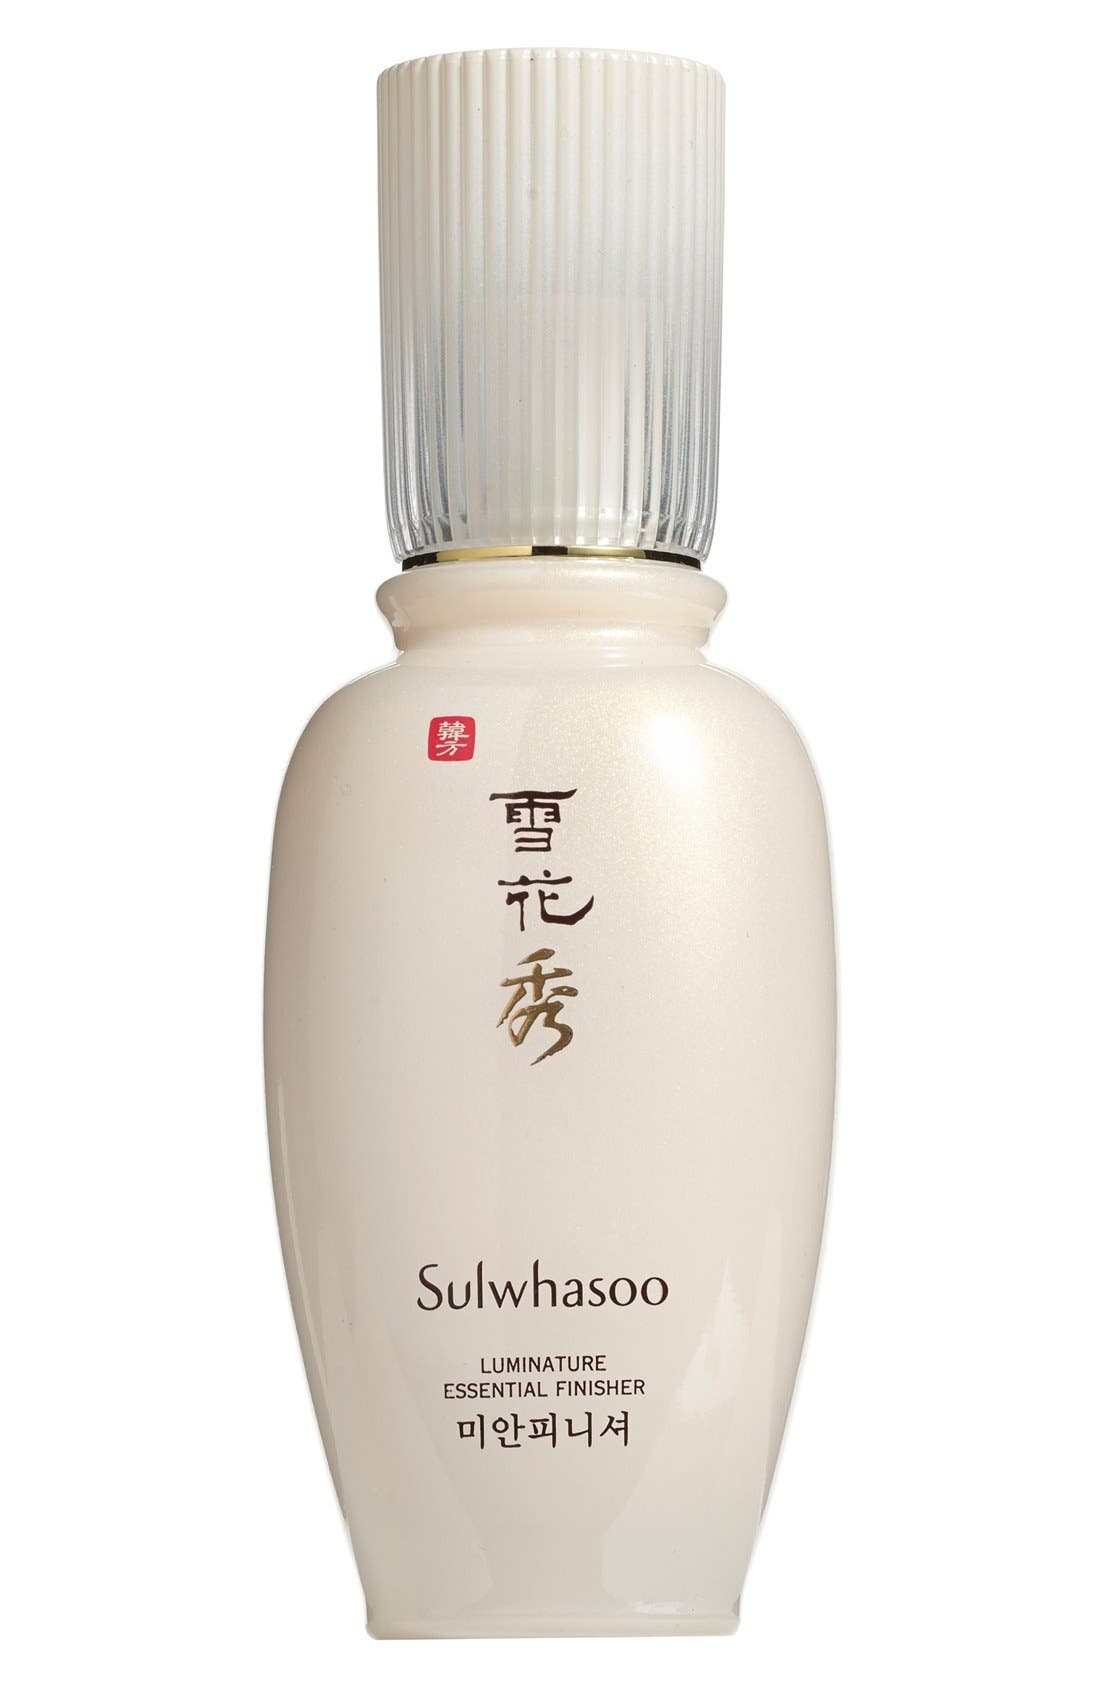 Sulwhasoo 'Luminature' Essential Finisher